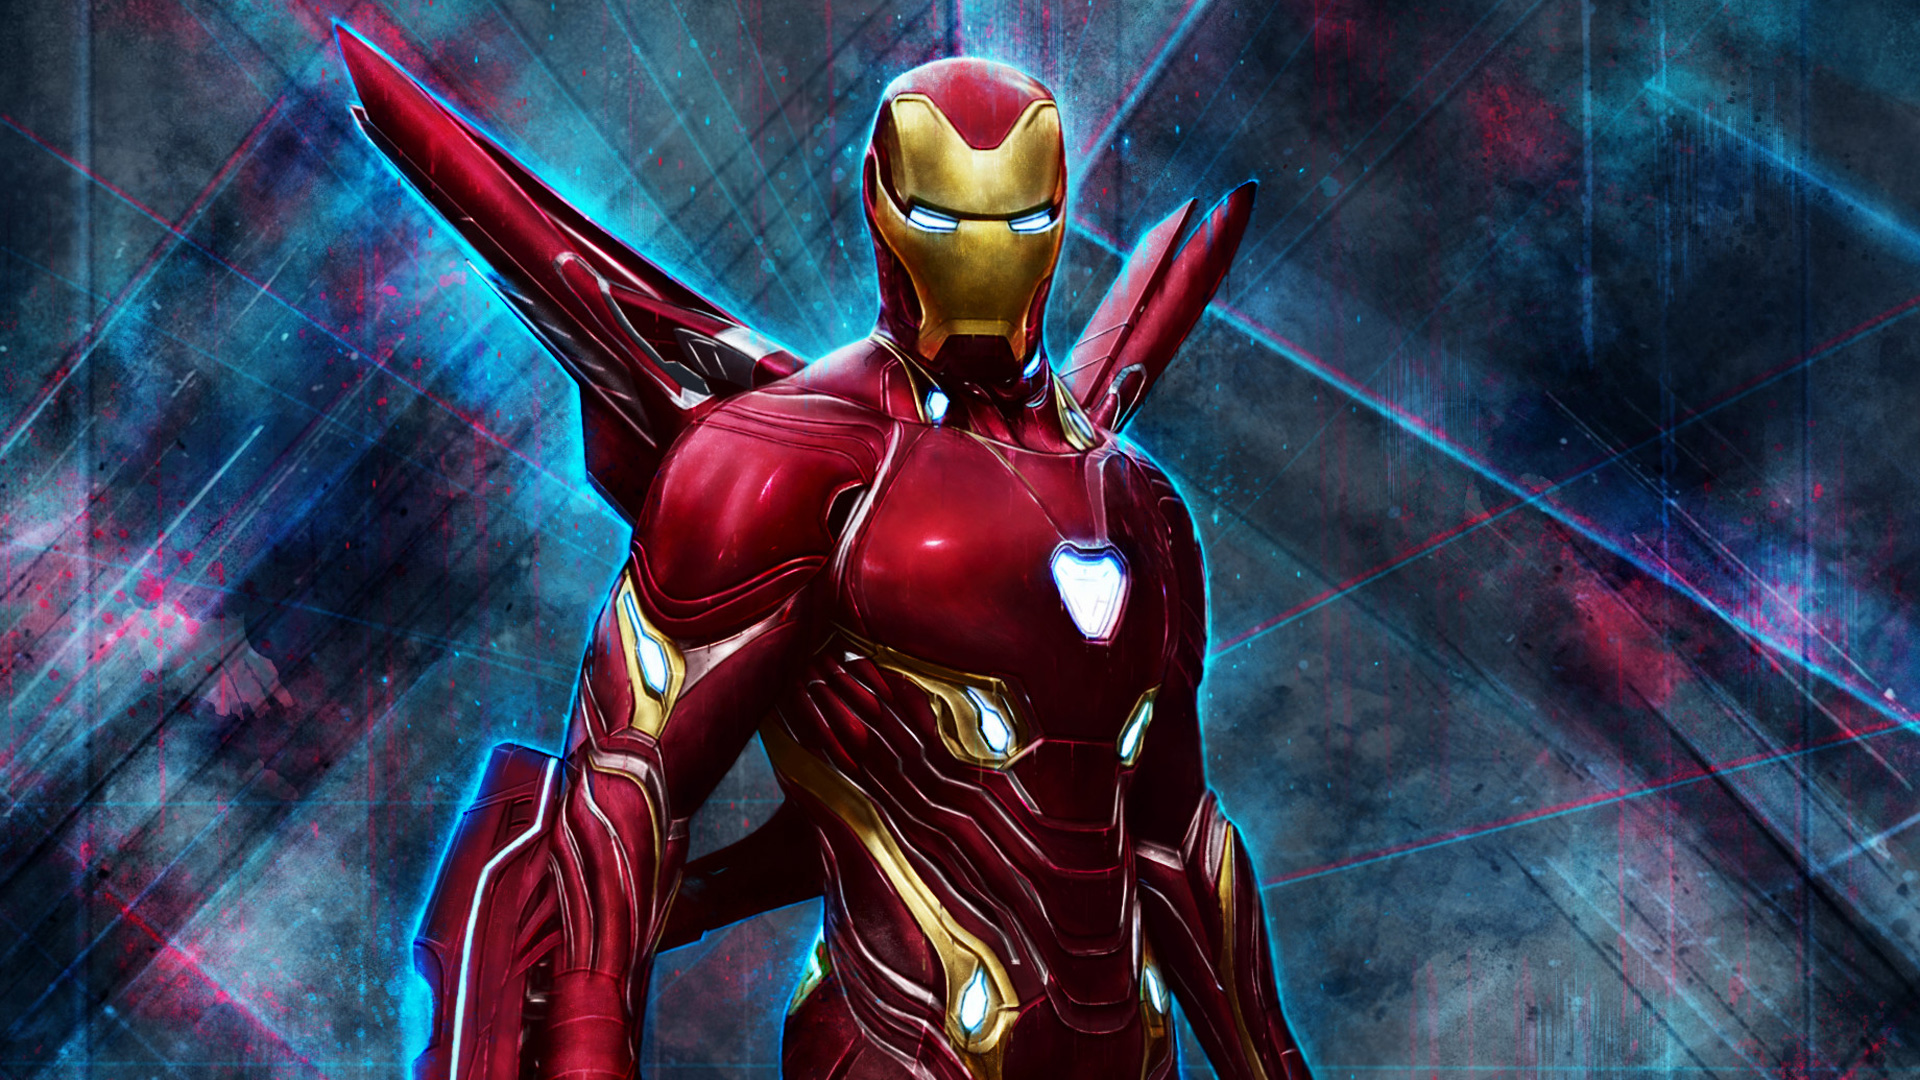 Iron man wallpaper with mark l armor suit hd wallpapers - Iron man wallpaper anime ...